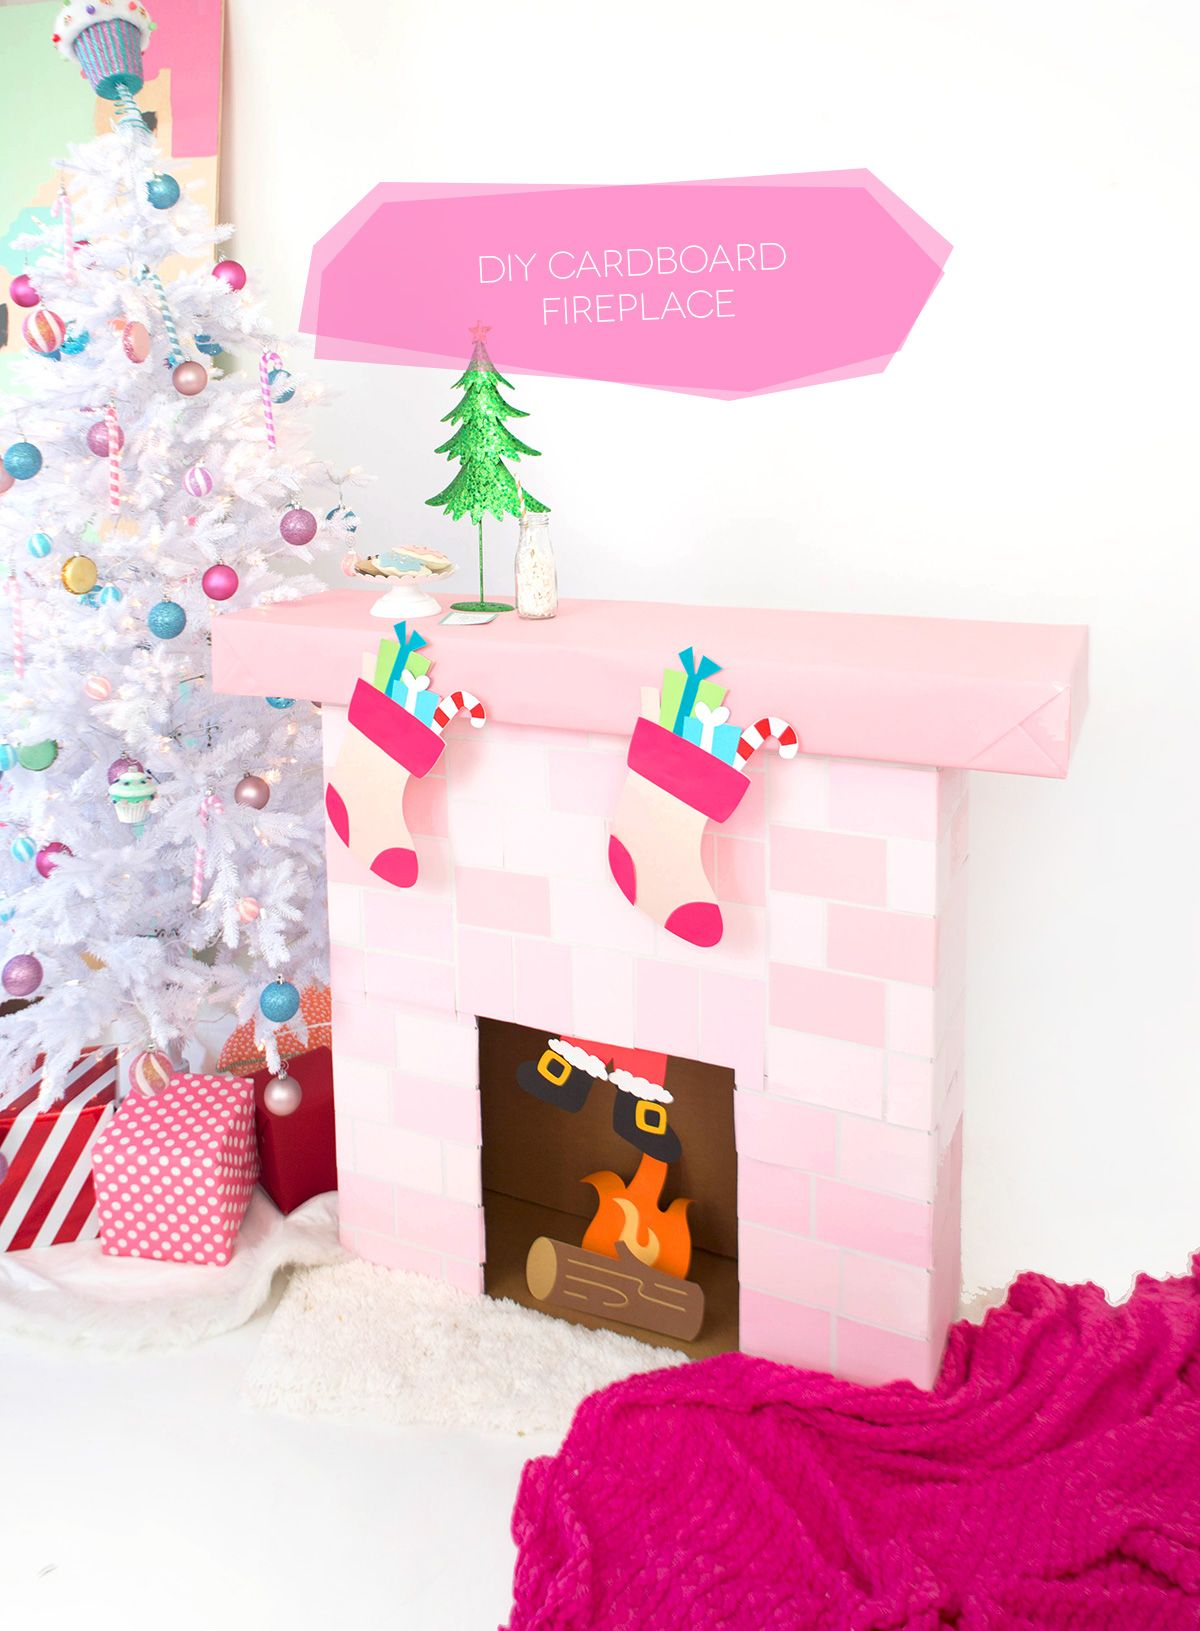 DIY Cardboard Box Fireplace Christmas Fun Pinterest Diy